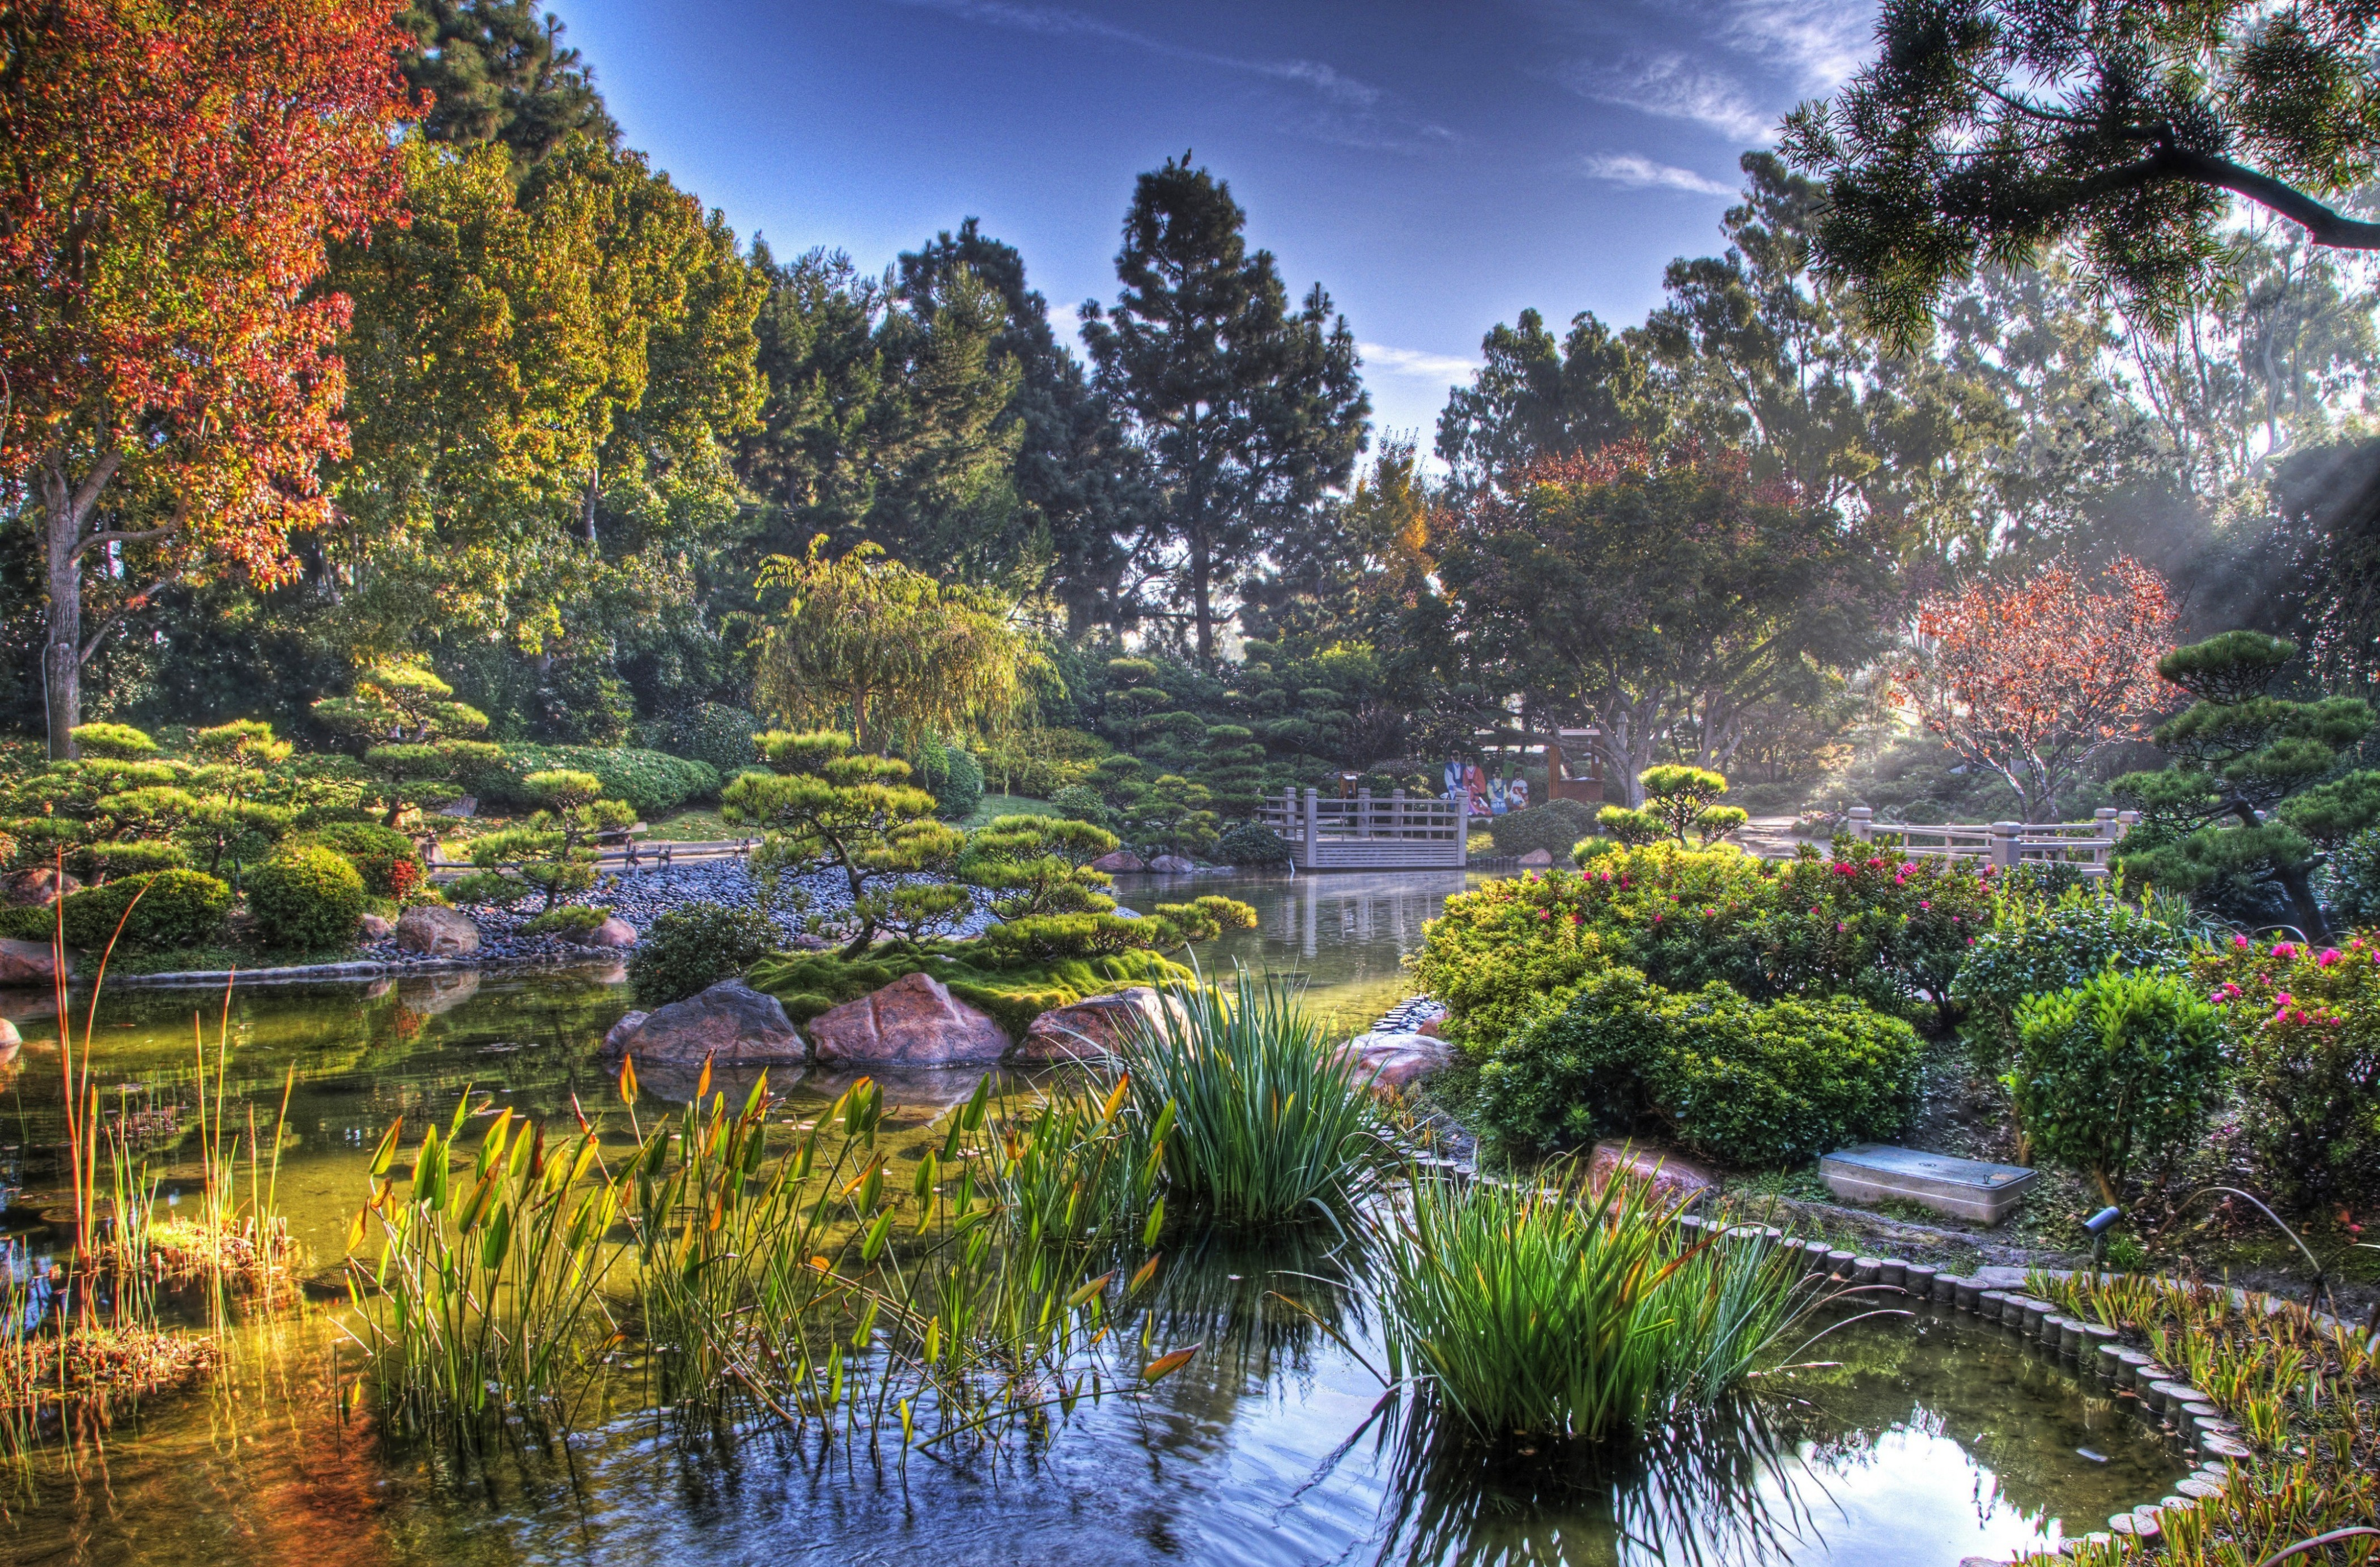 30 Japanese Garden HD Wallpapers